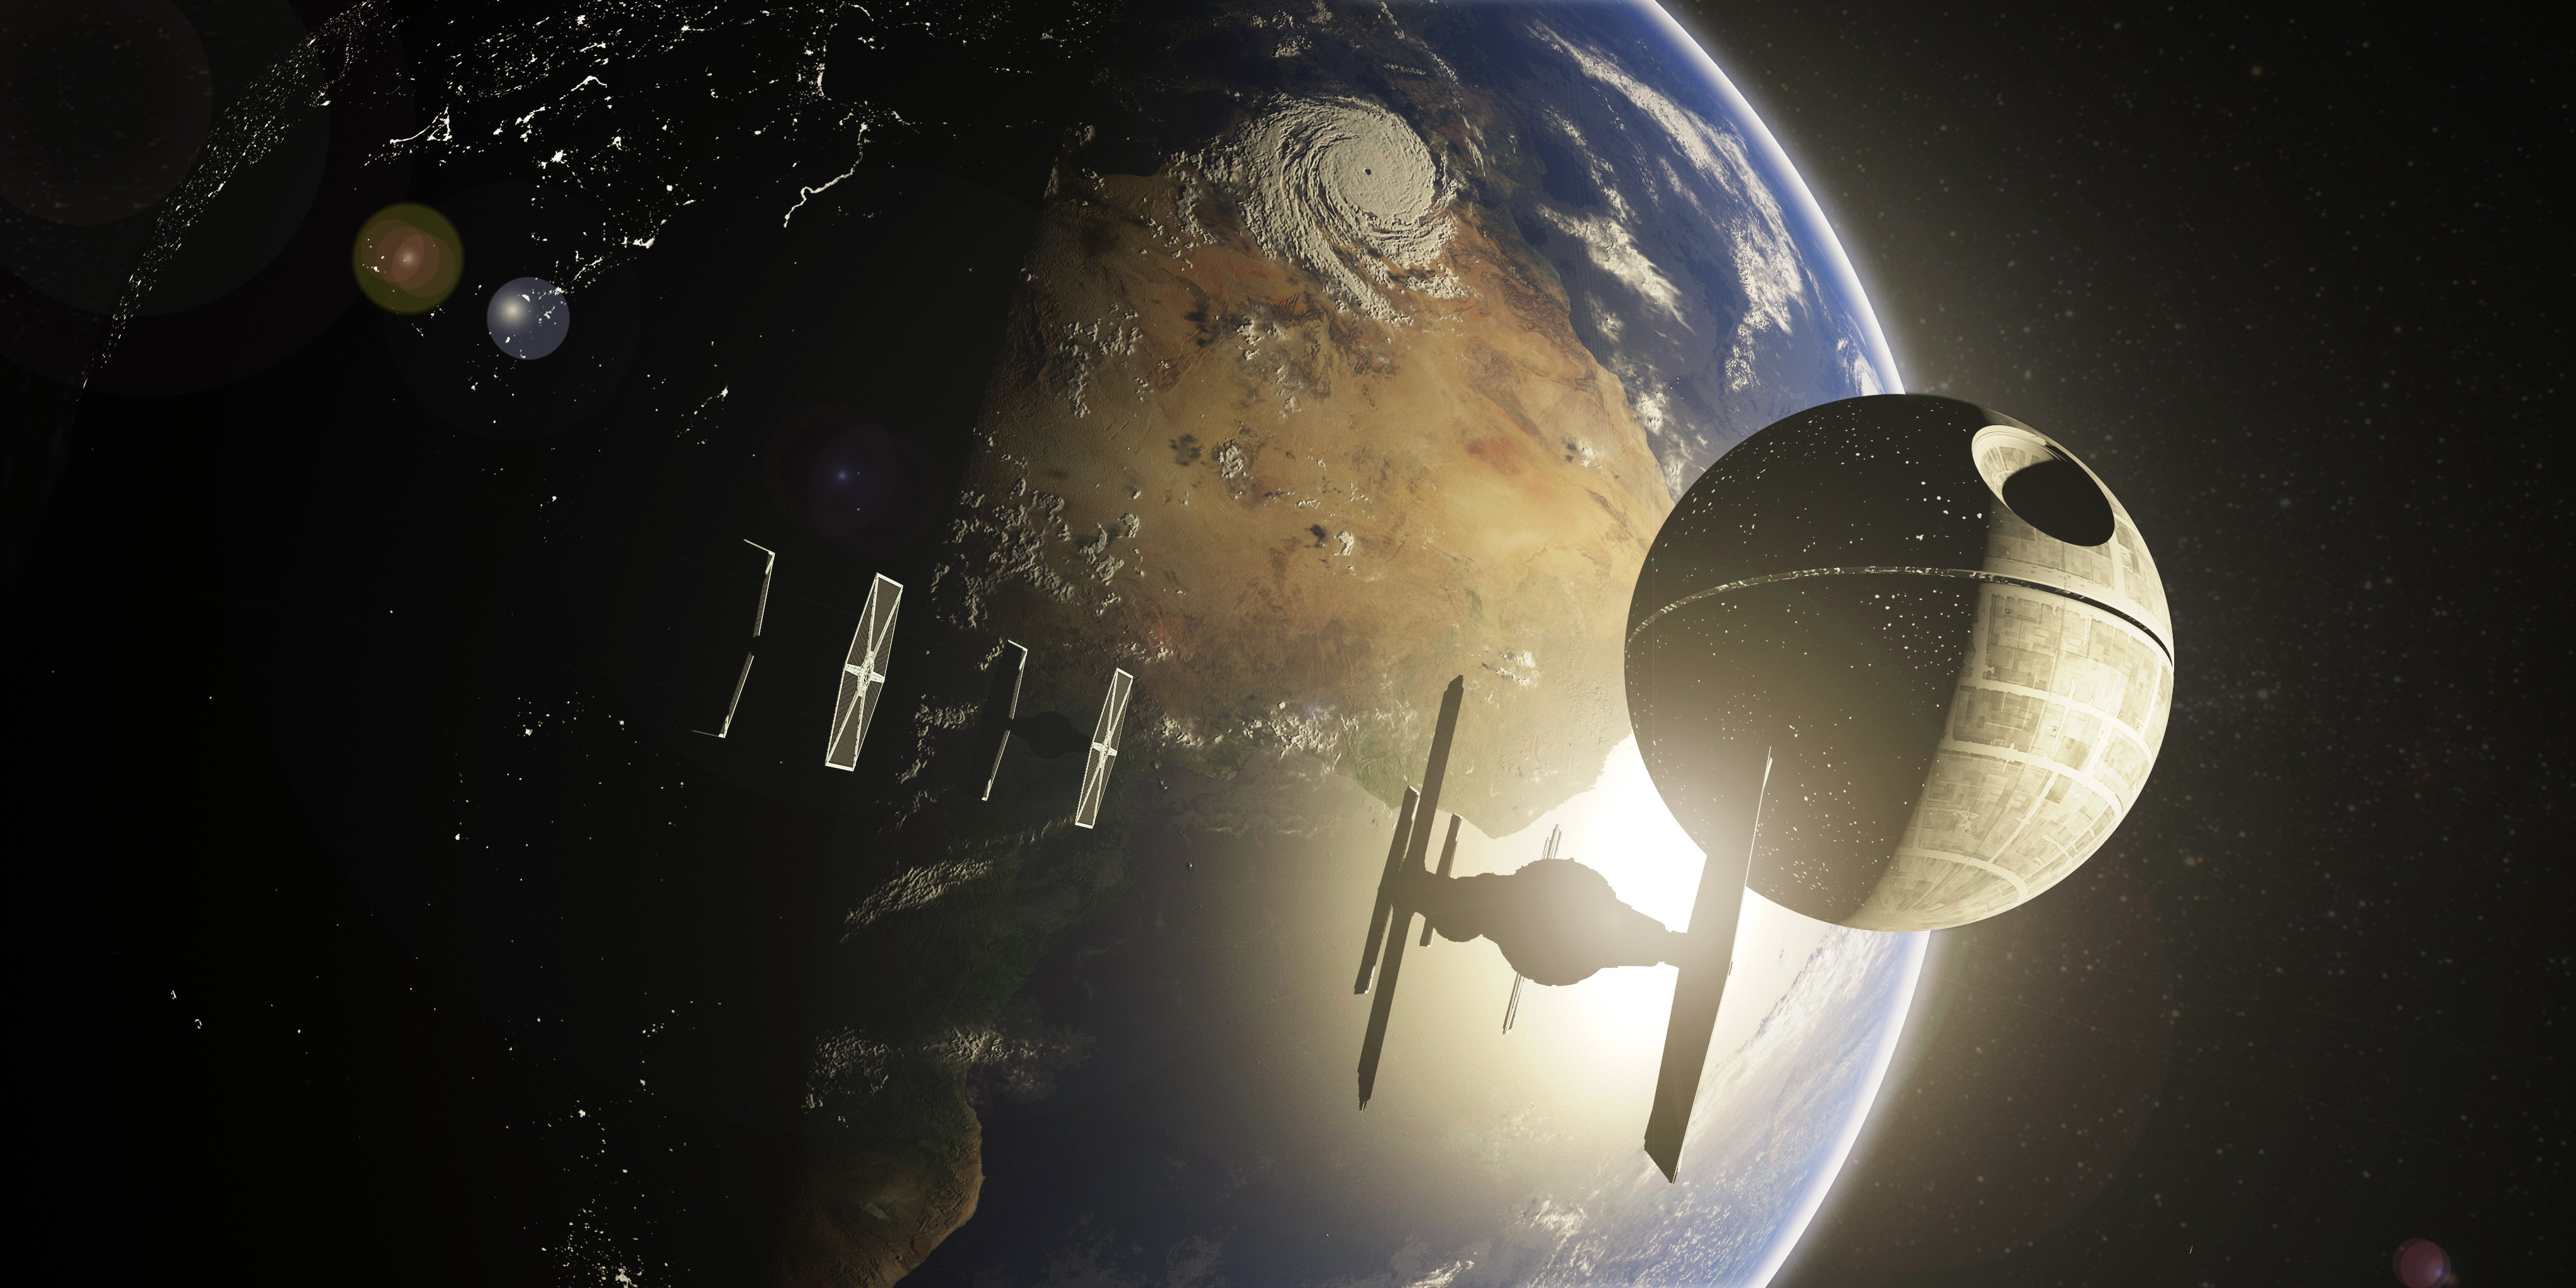 Free Download Star Wars Death Star Tie Fighter Space Planet Earth